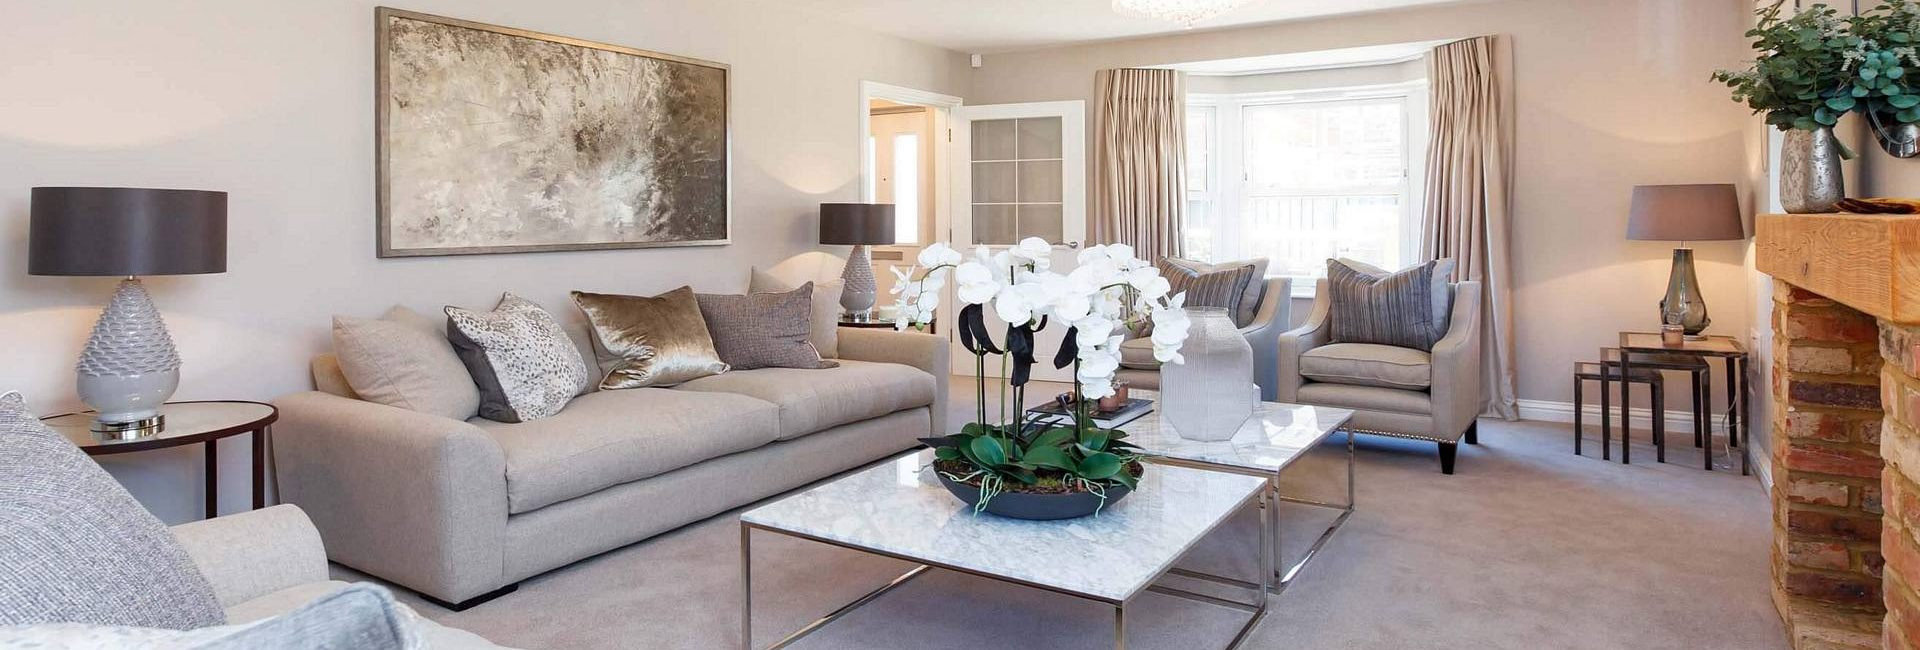 Stylish modern lounge in shades of taupe - recreate with Fabric Gallery and Interiors in Dunnington, York